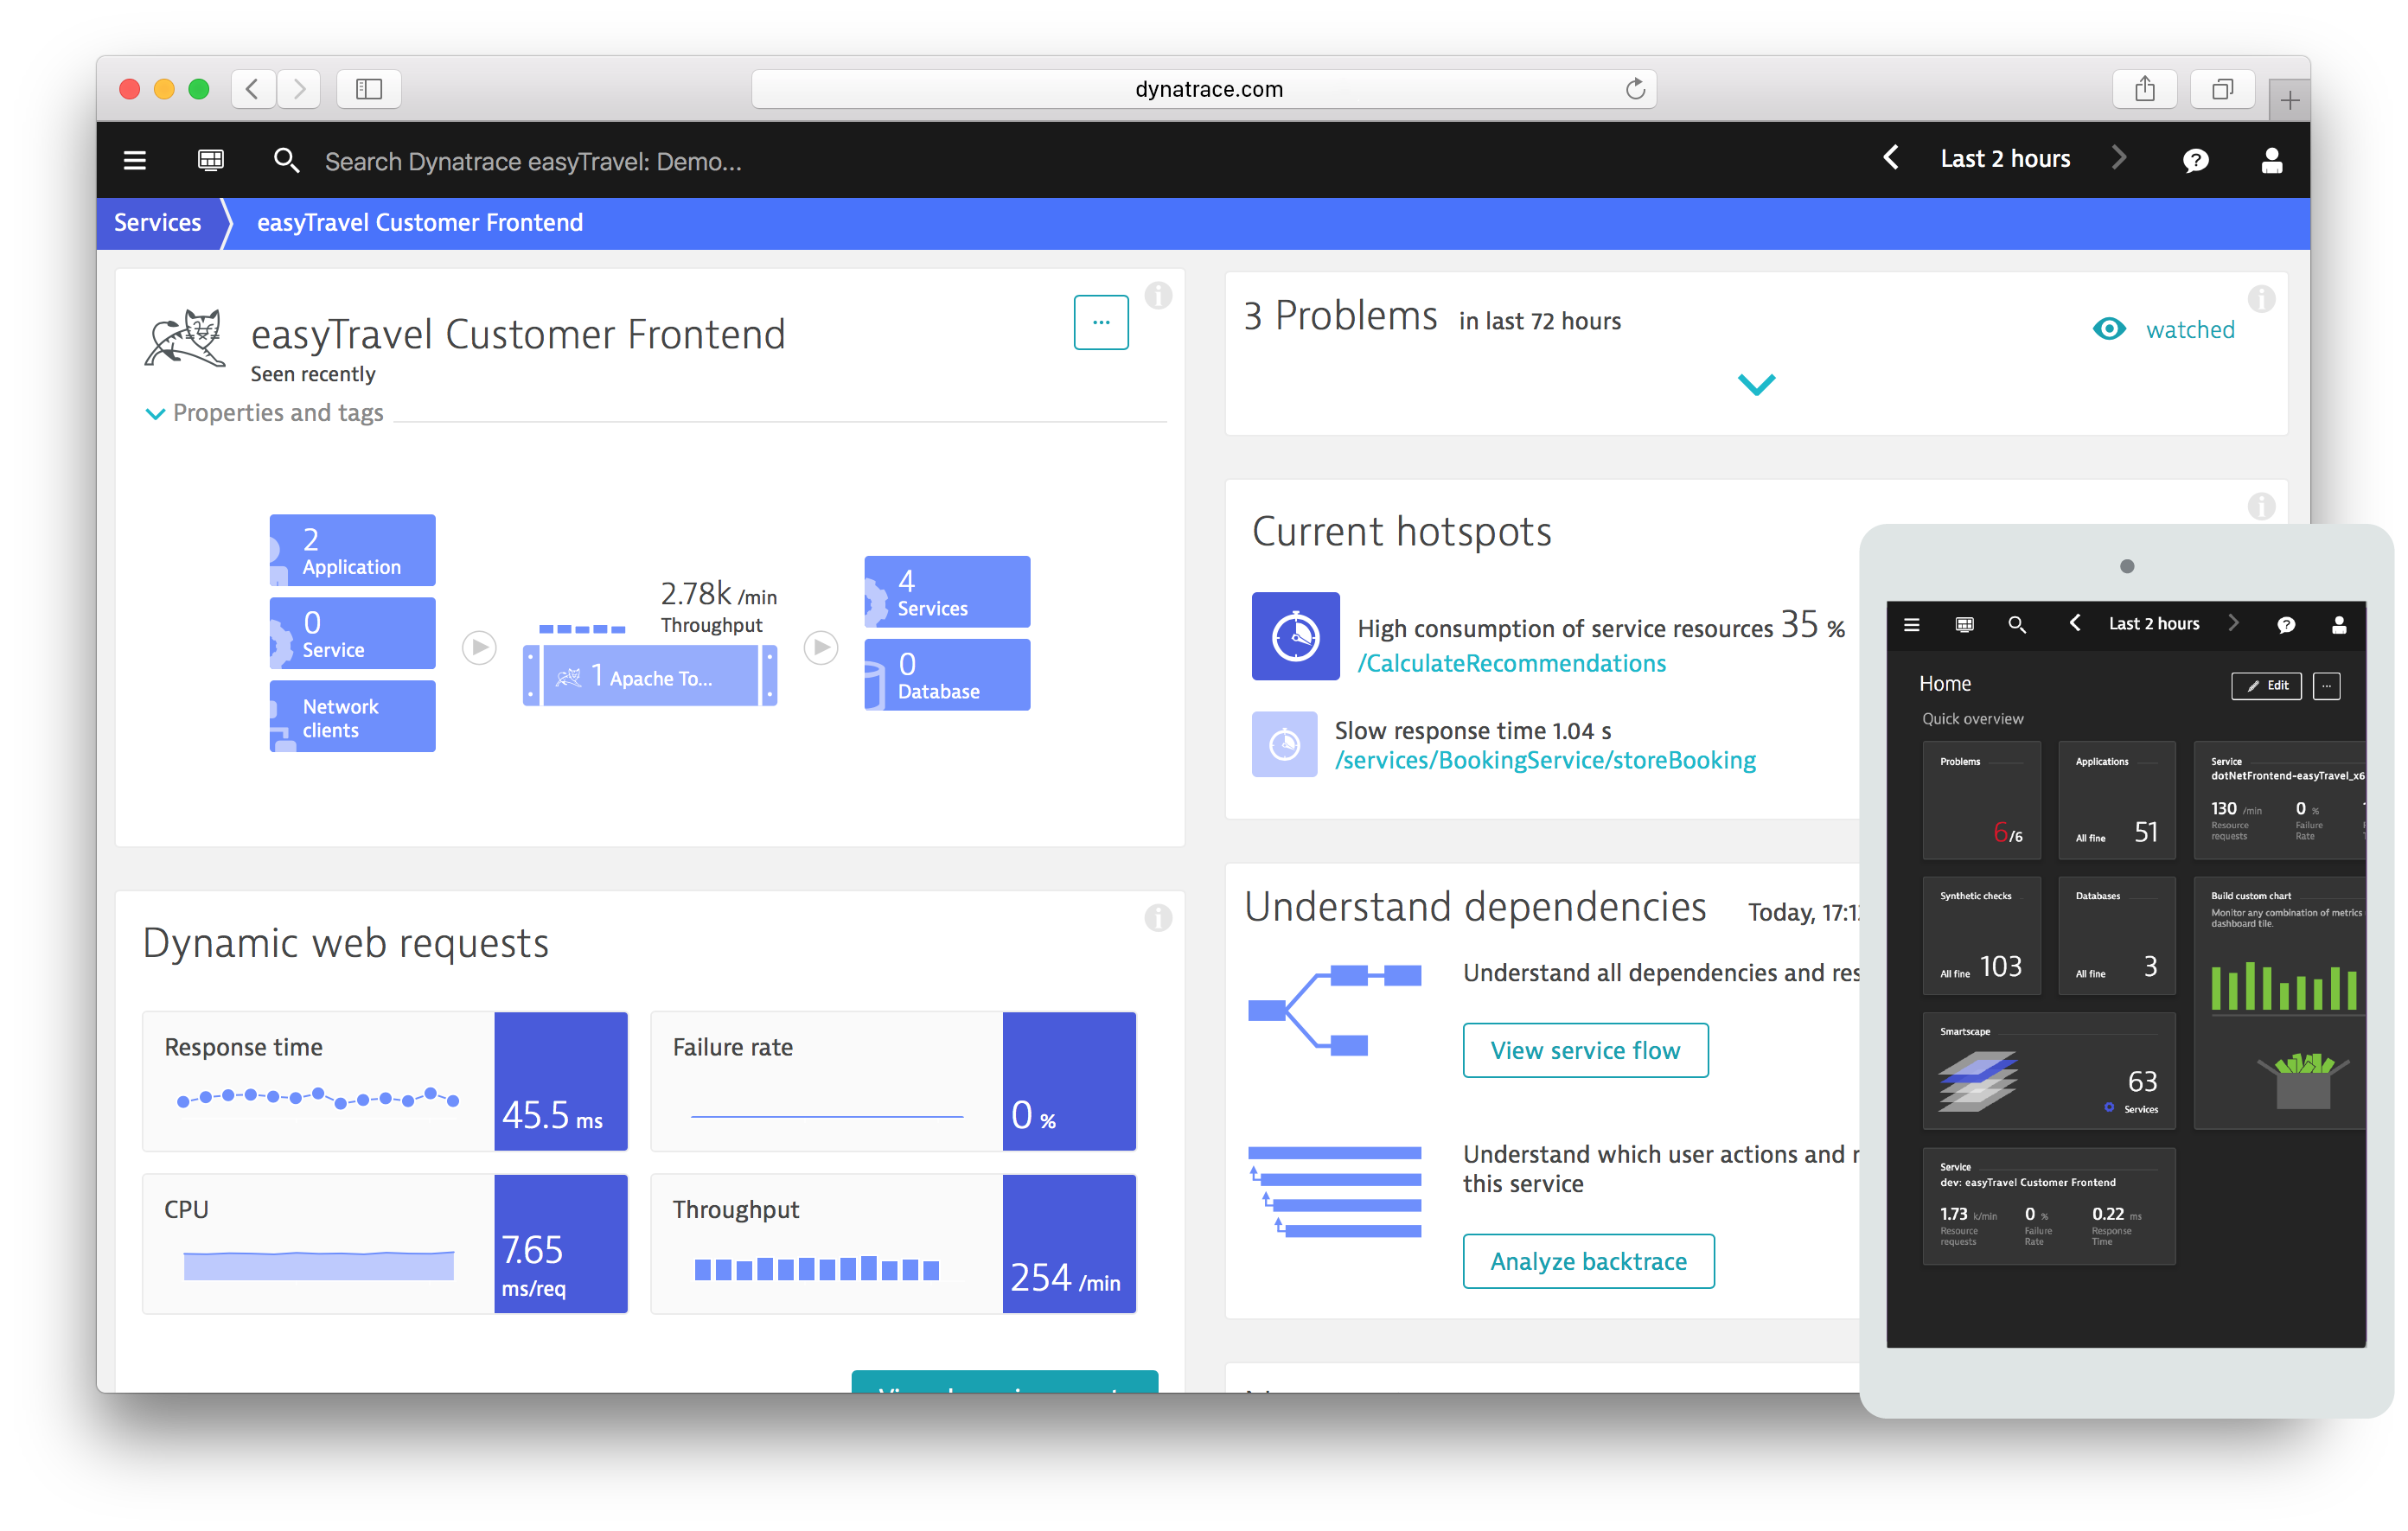 Dynatrace SaaS product. Conceptual design, interaction design, navigation, wireframing, sketching, mockups, prototypes and support during implementation.